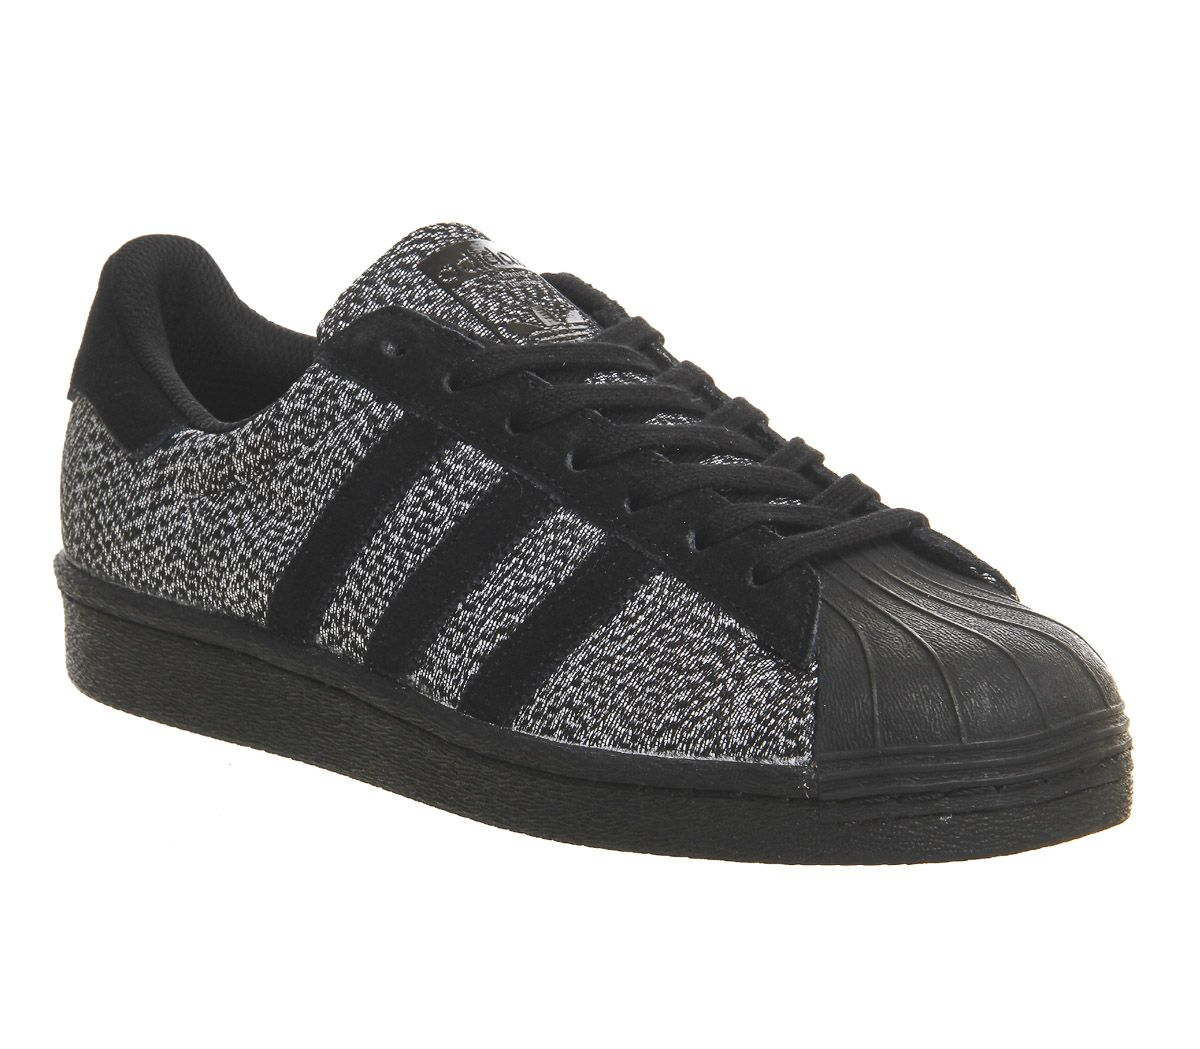 Buy Black White Black Knit Exclusive Adidas Superstar 1 from